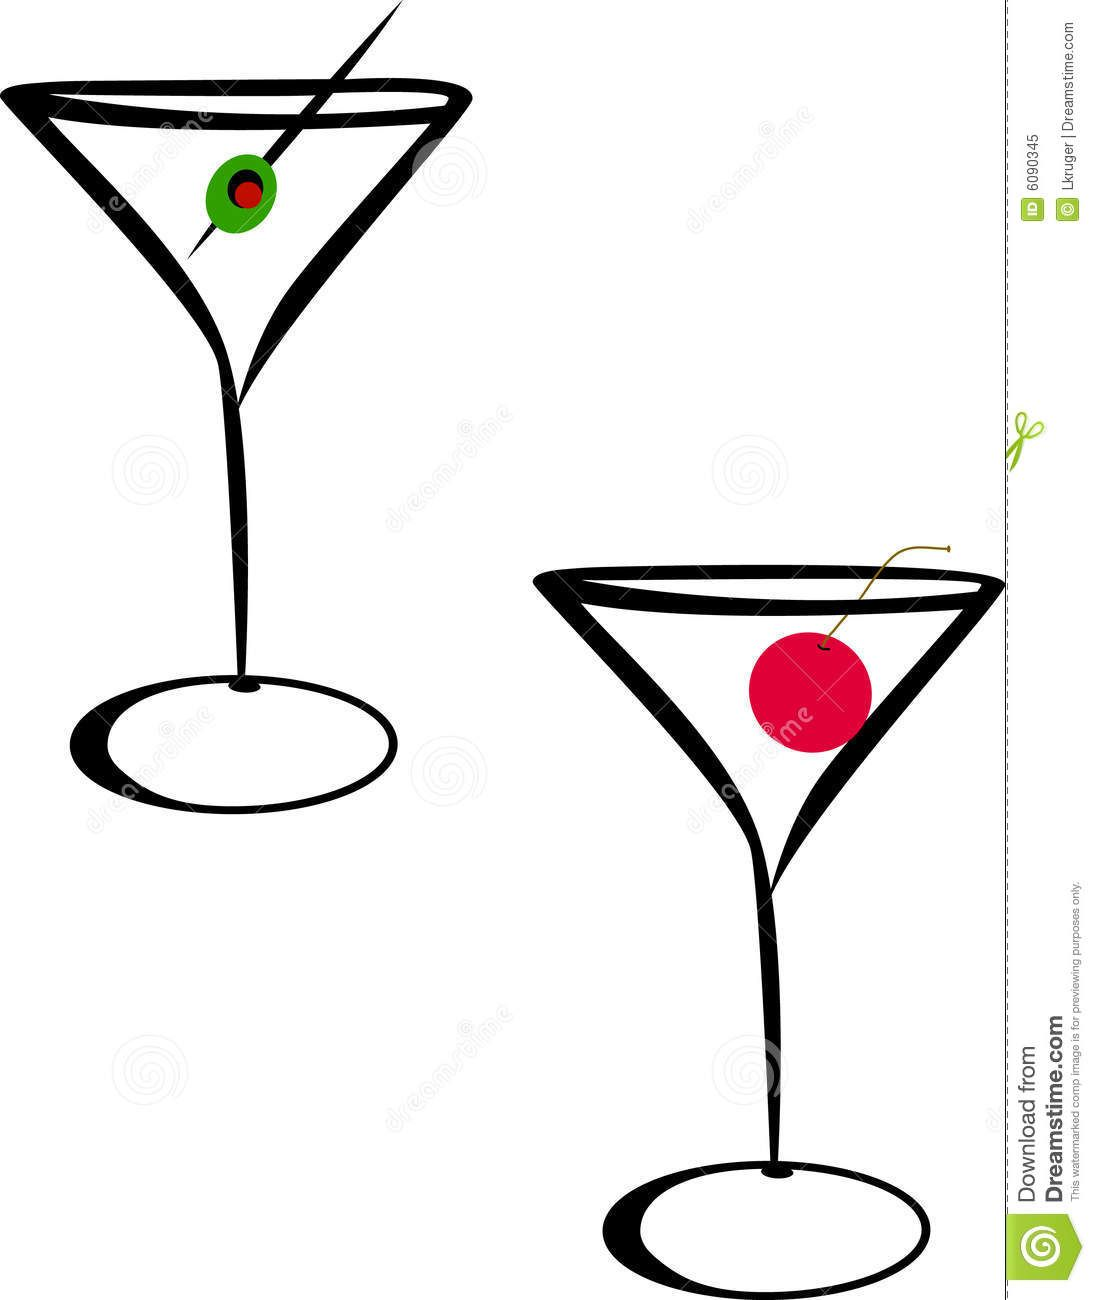 Champaign clipart champagne cocktail. Glass free clip art